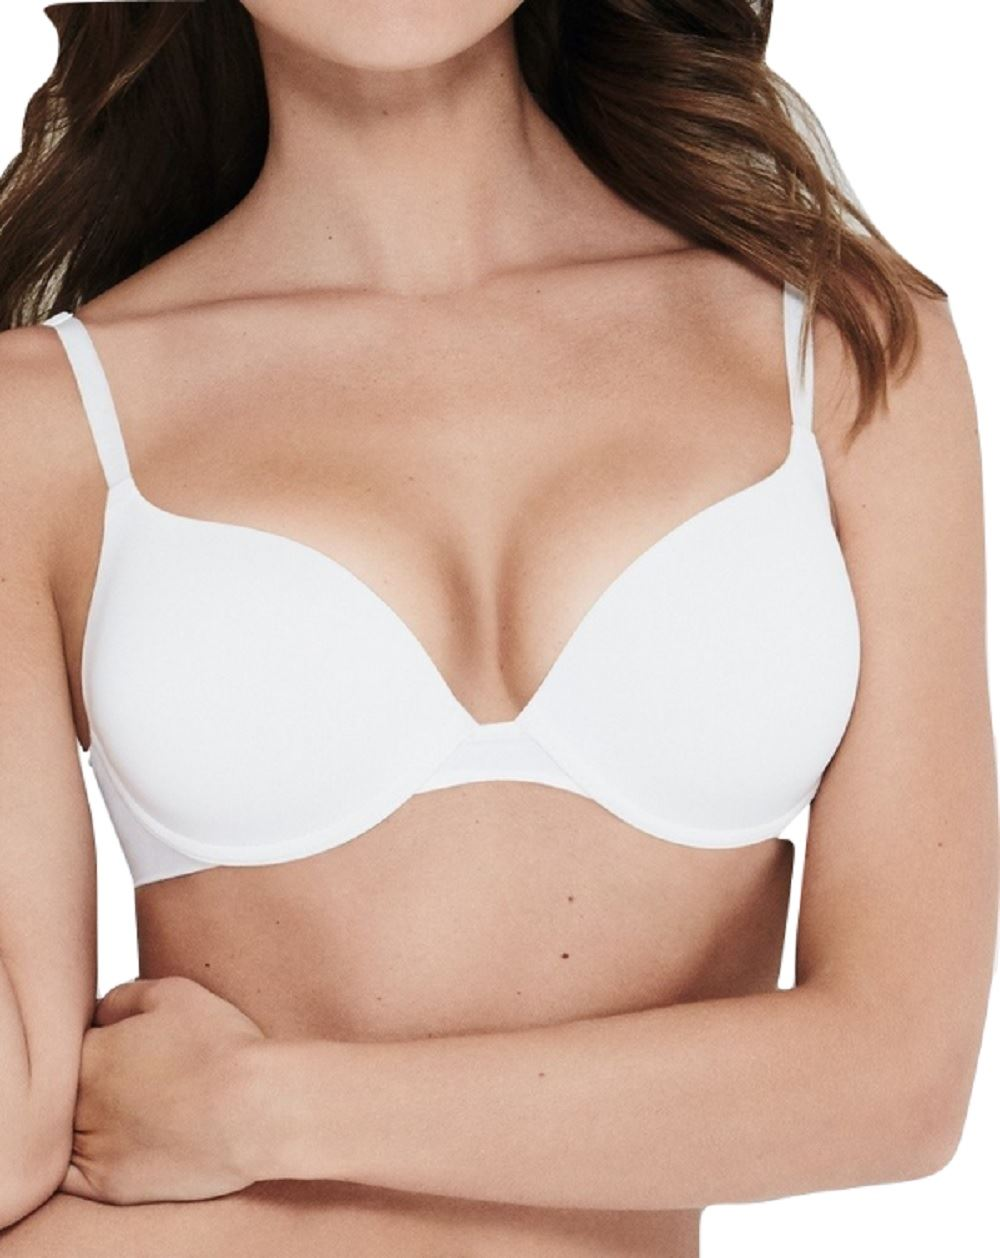 f837f941a0 Wonderbra Ultimate Silhouette Push Up T Shirt Bra W9443 Black White or  Skin  Picture 2 of 2